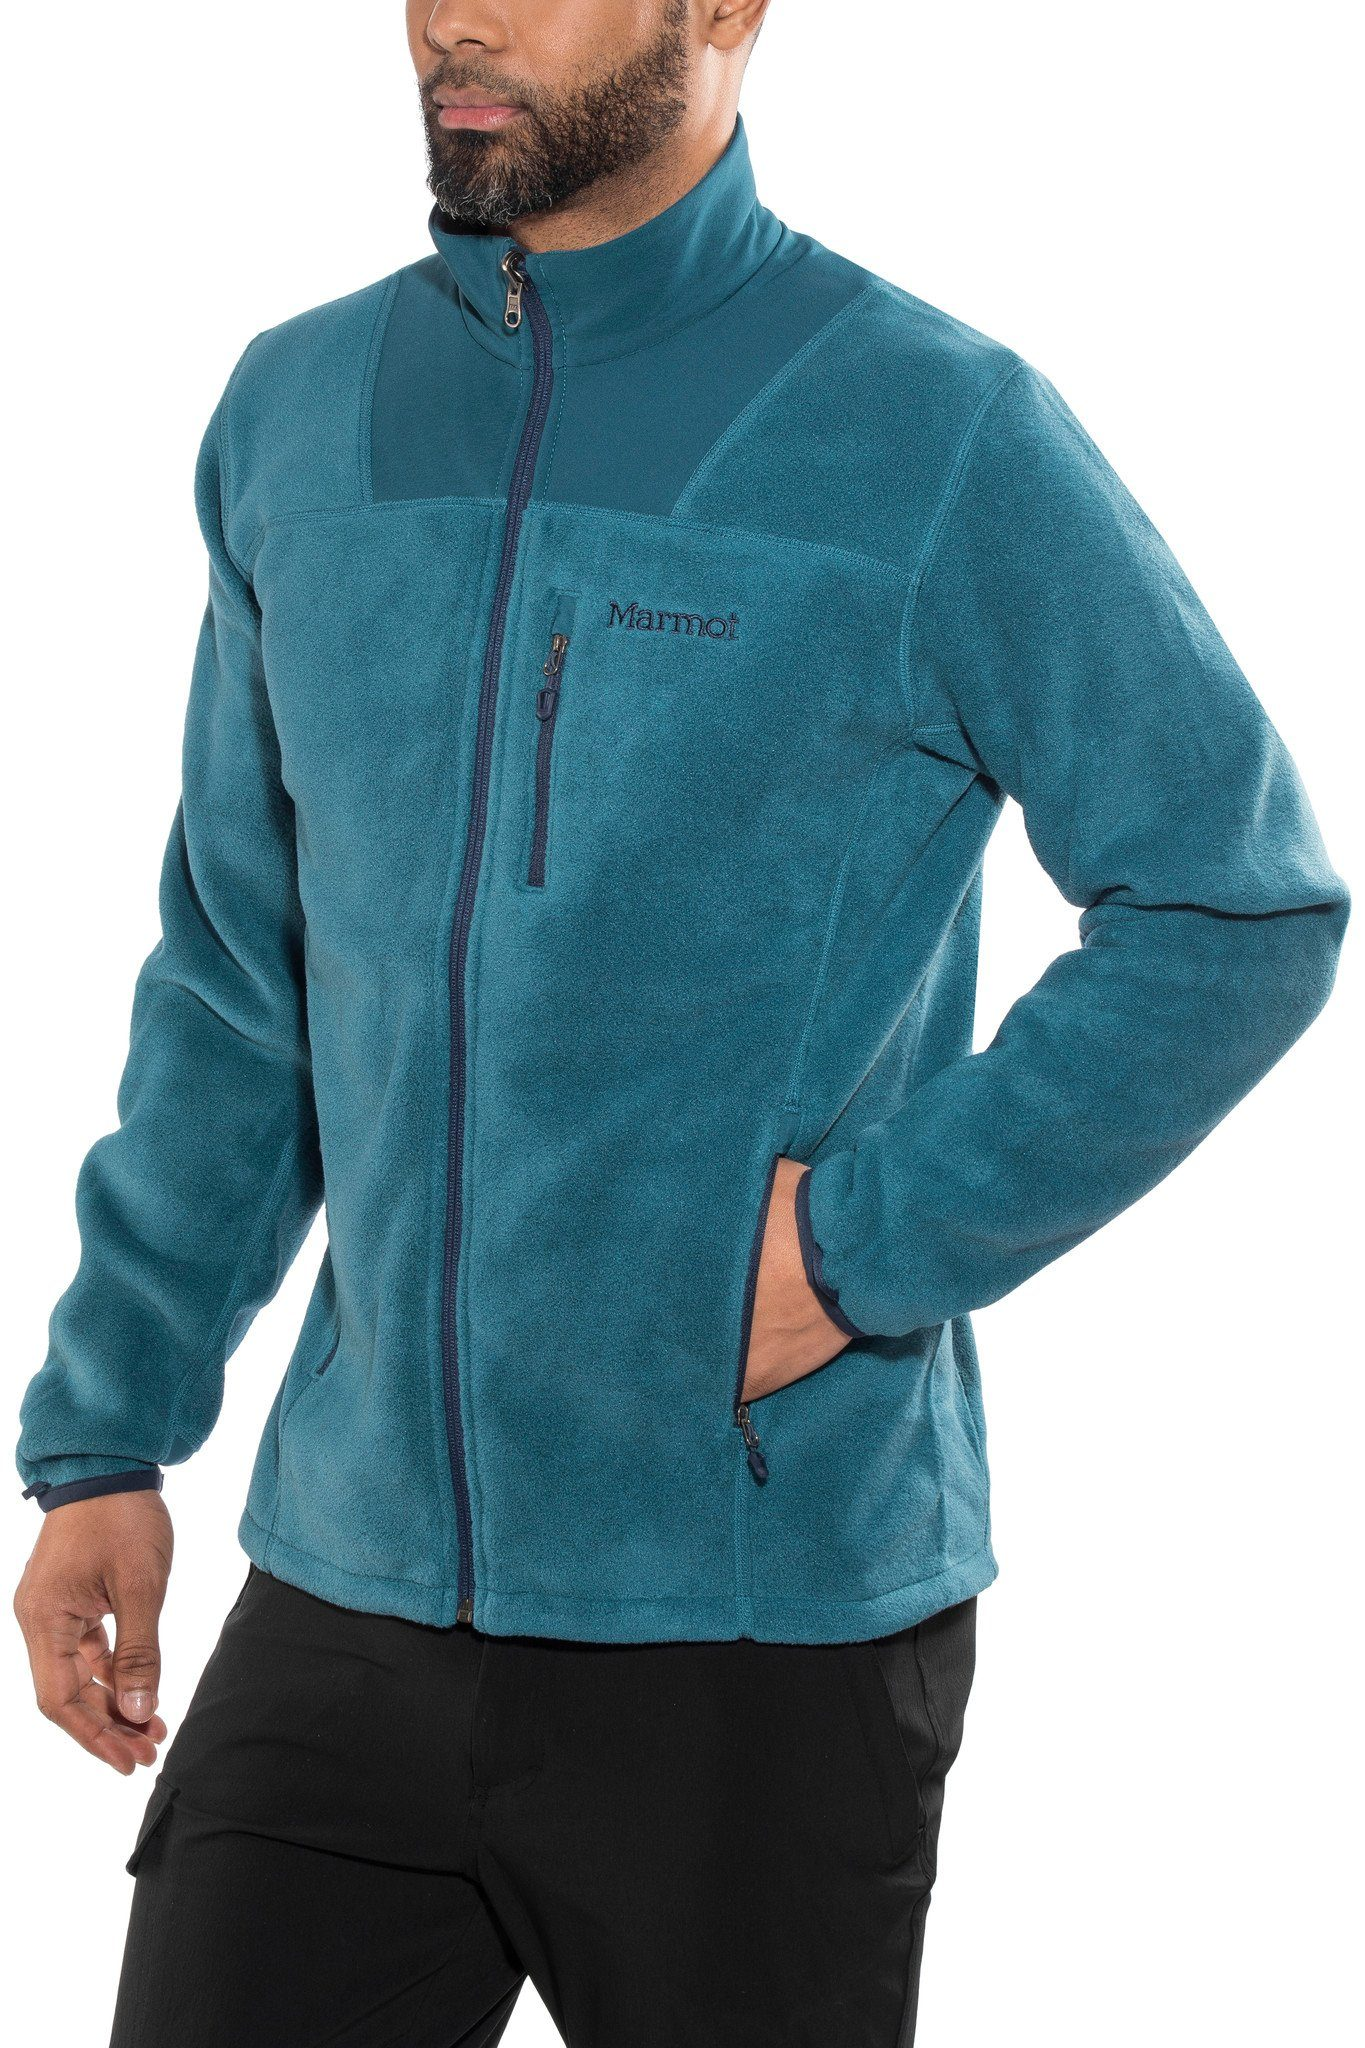 Marmot Outdoorjacke »Bryson Fleece Jacket Men«